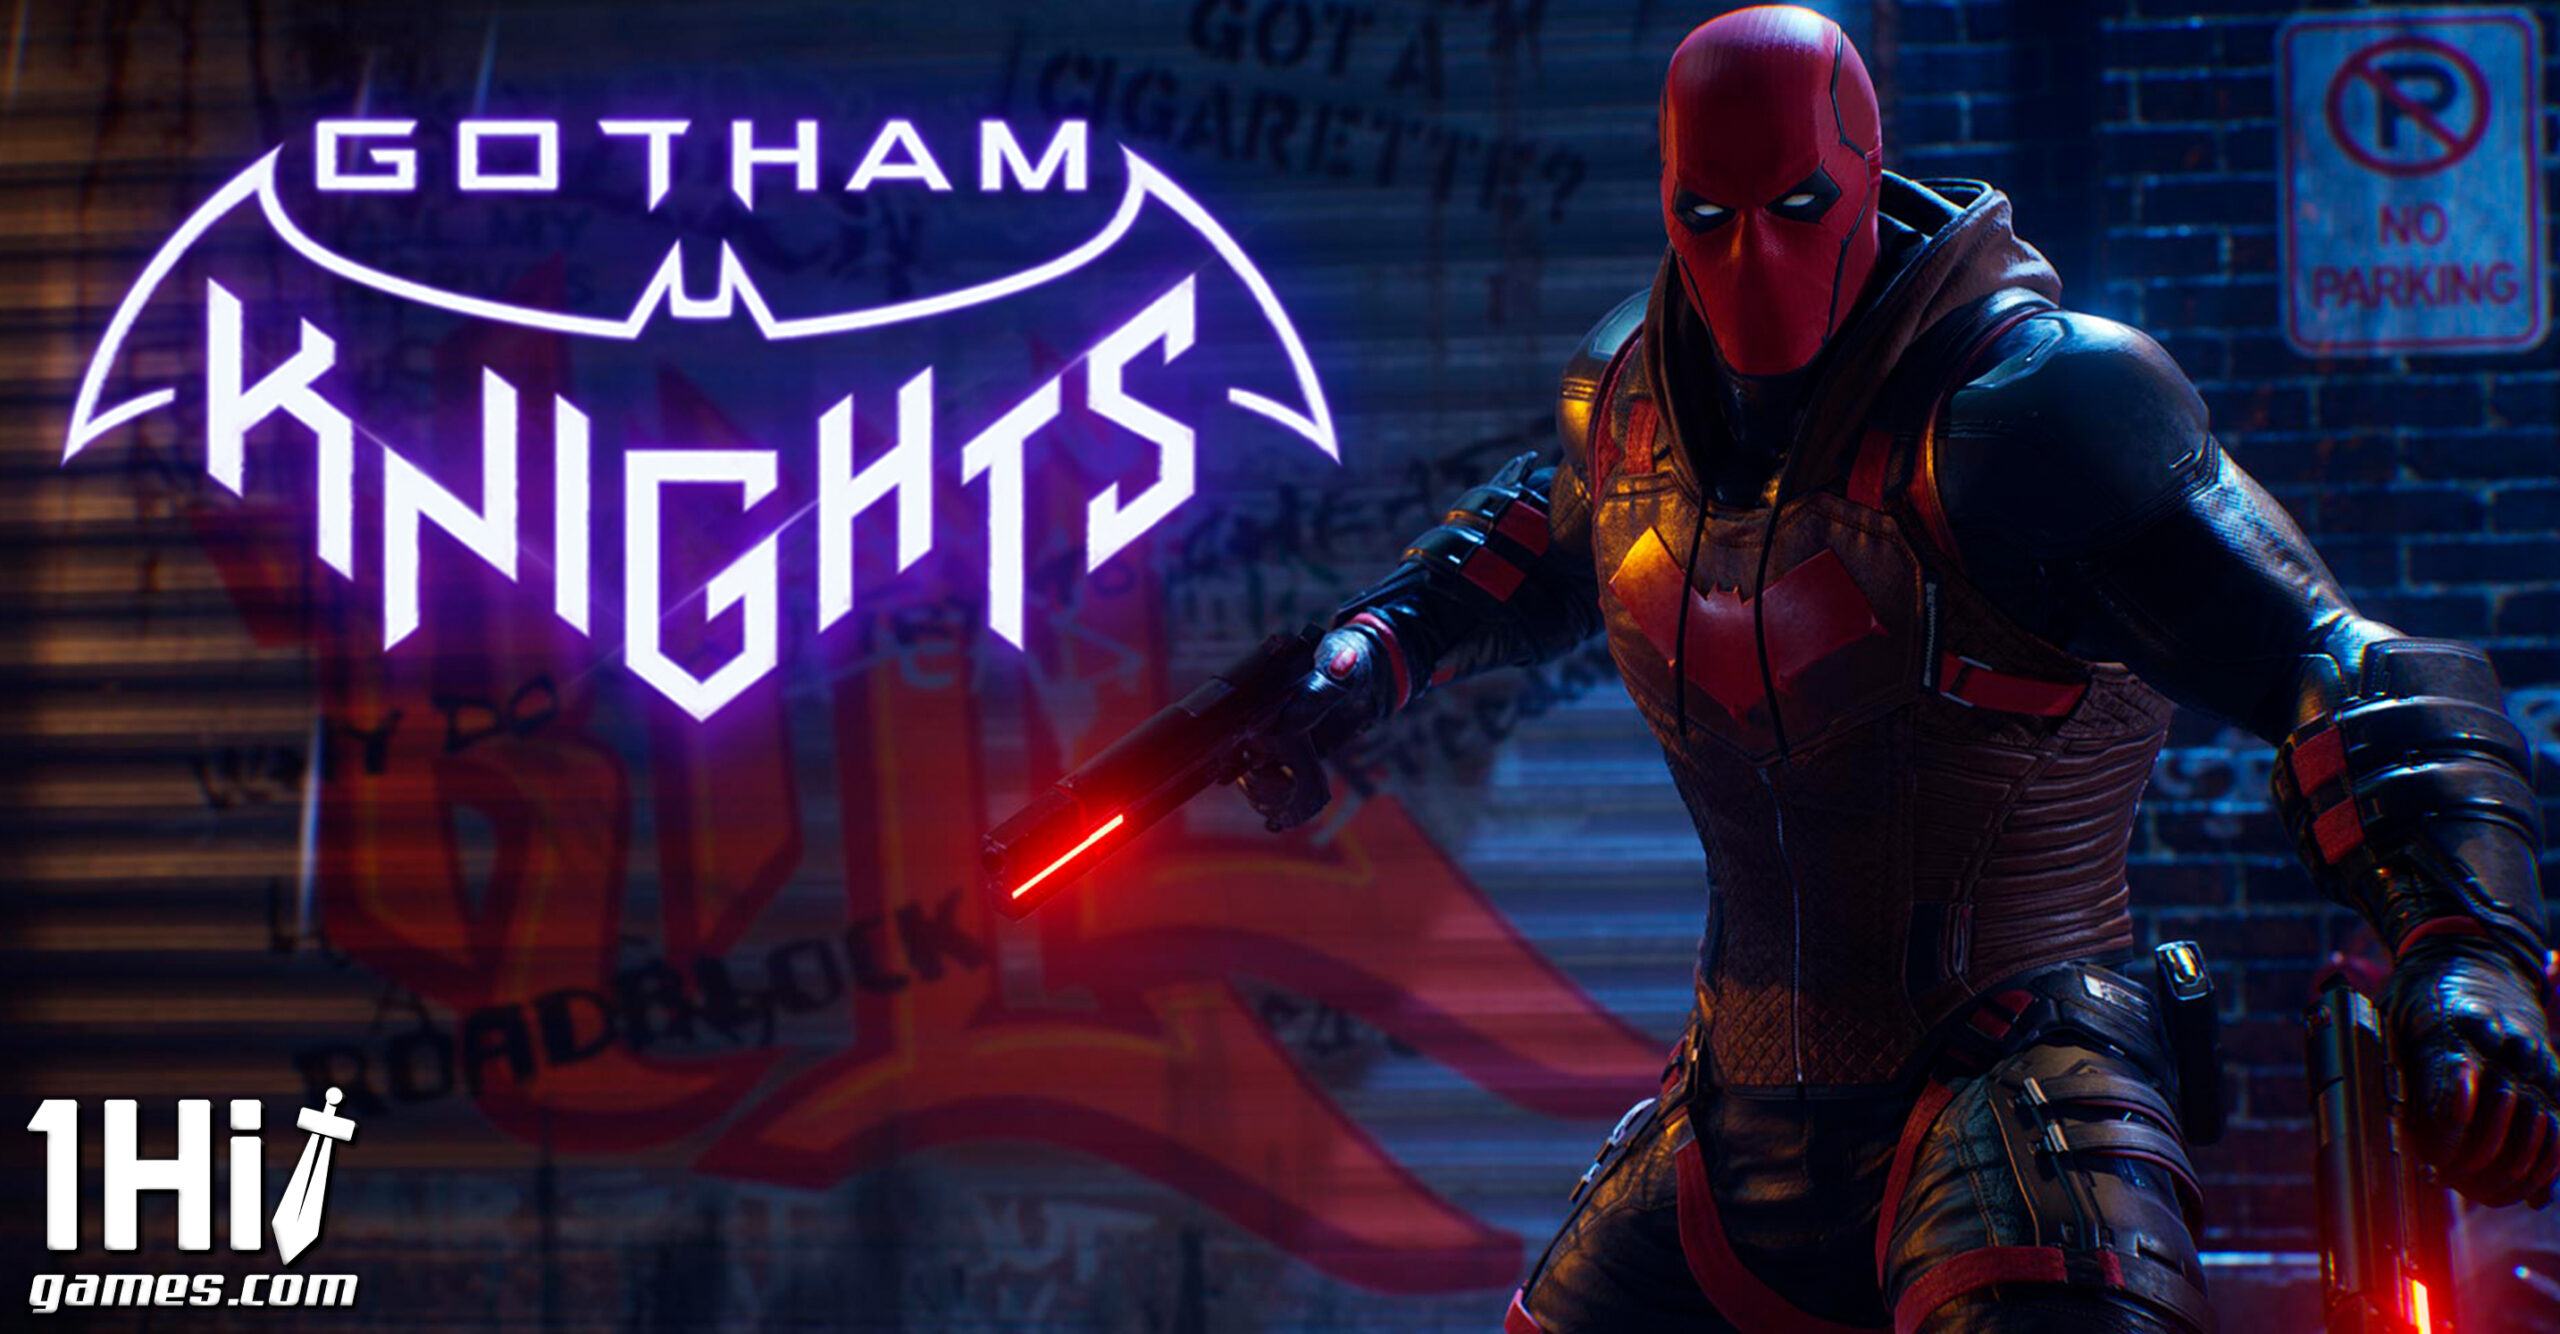 Warner Bros. Games adia Gotham Knights para 2022